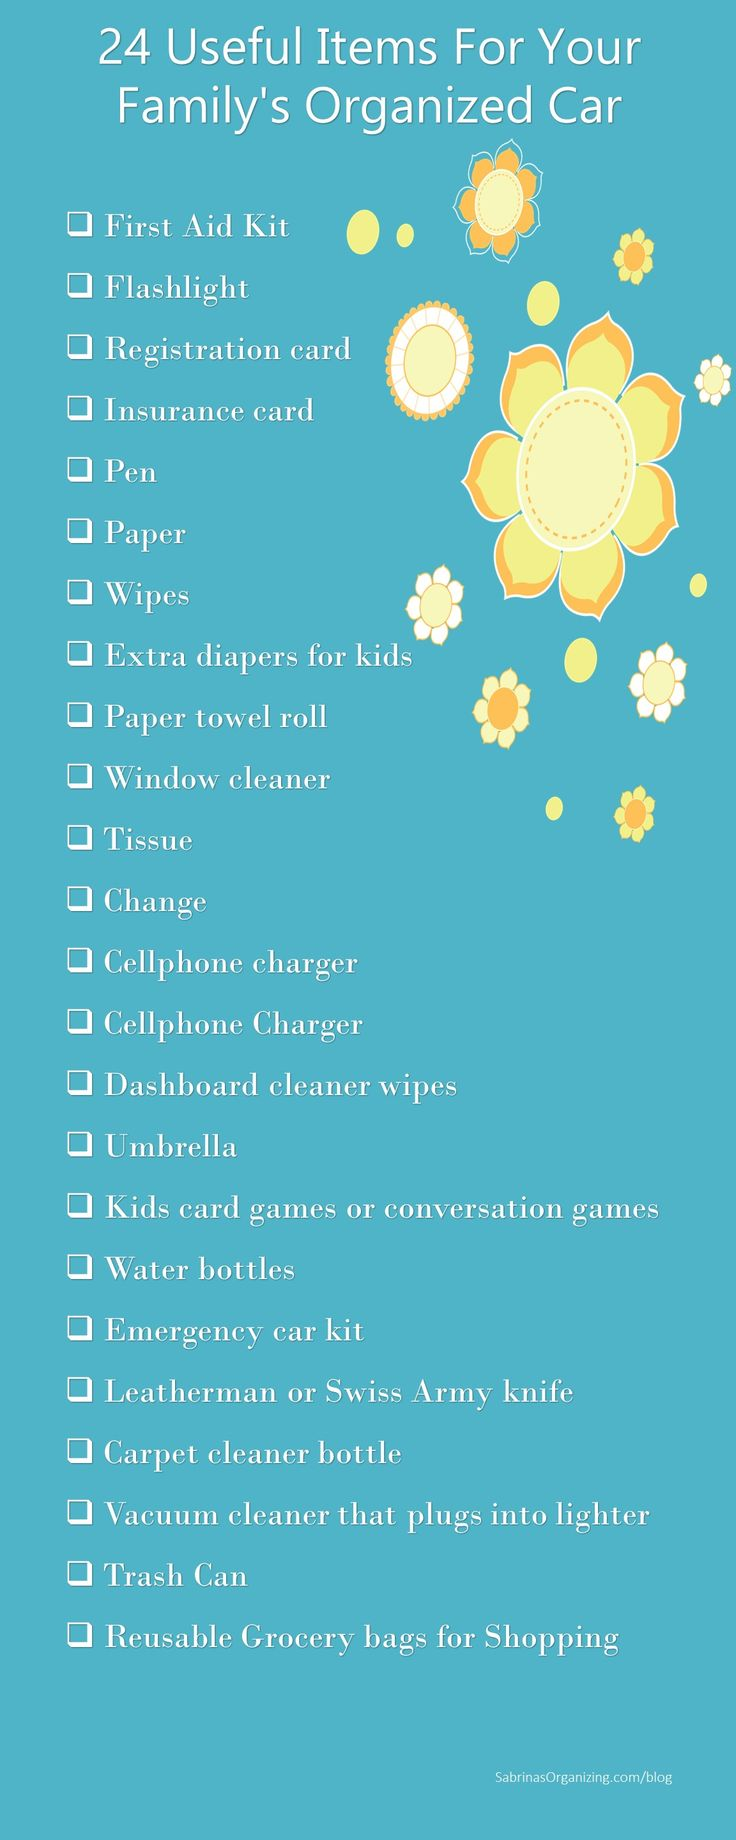 24 Useful Items For Your Family's Organized Car - family car or minivan organization to help keep your car super organized and clean.